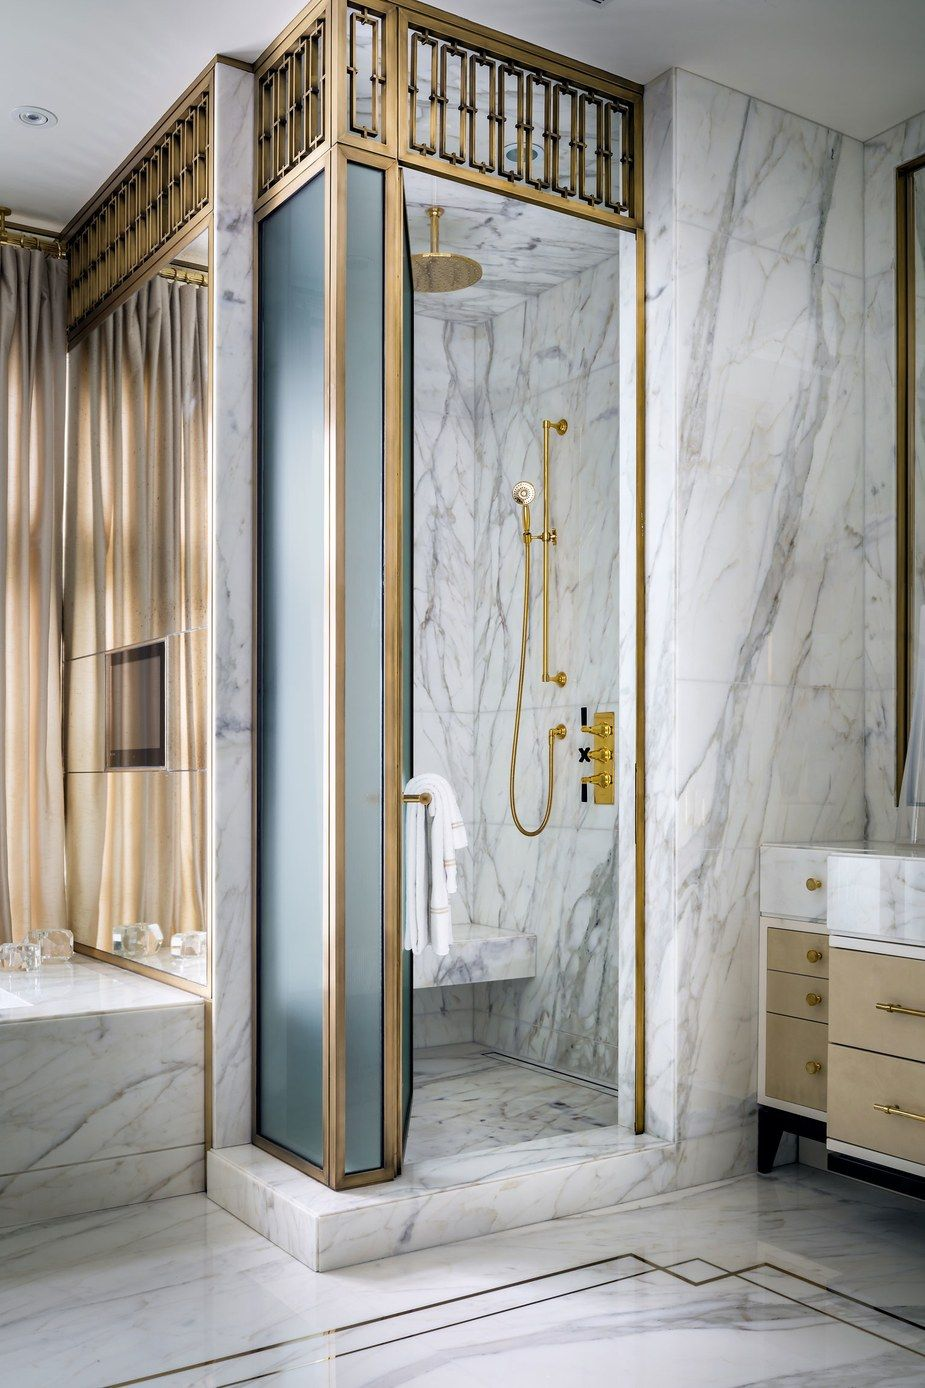 How to pick the perfect marble slab for your countertops yards